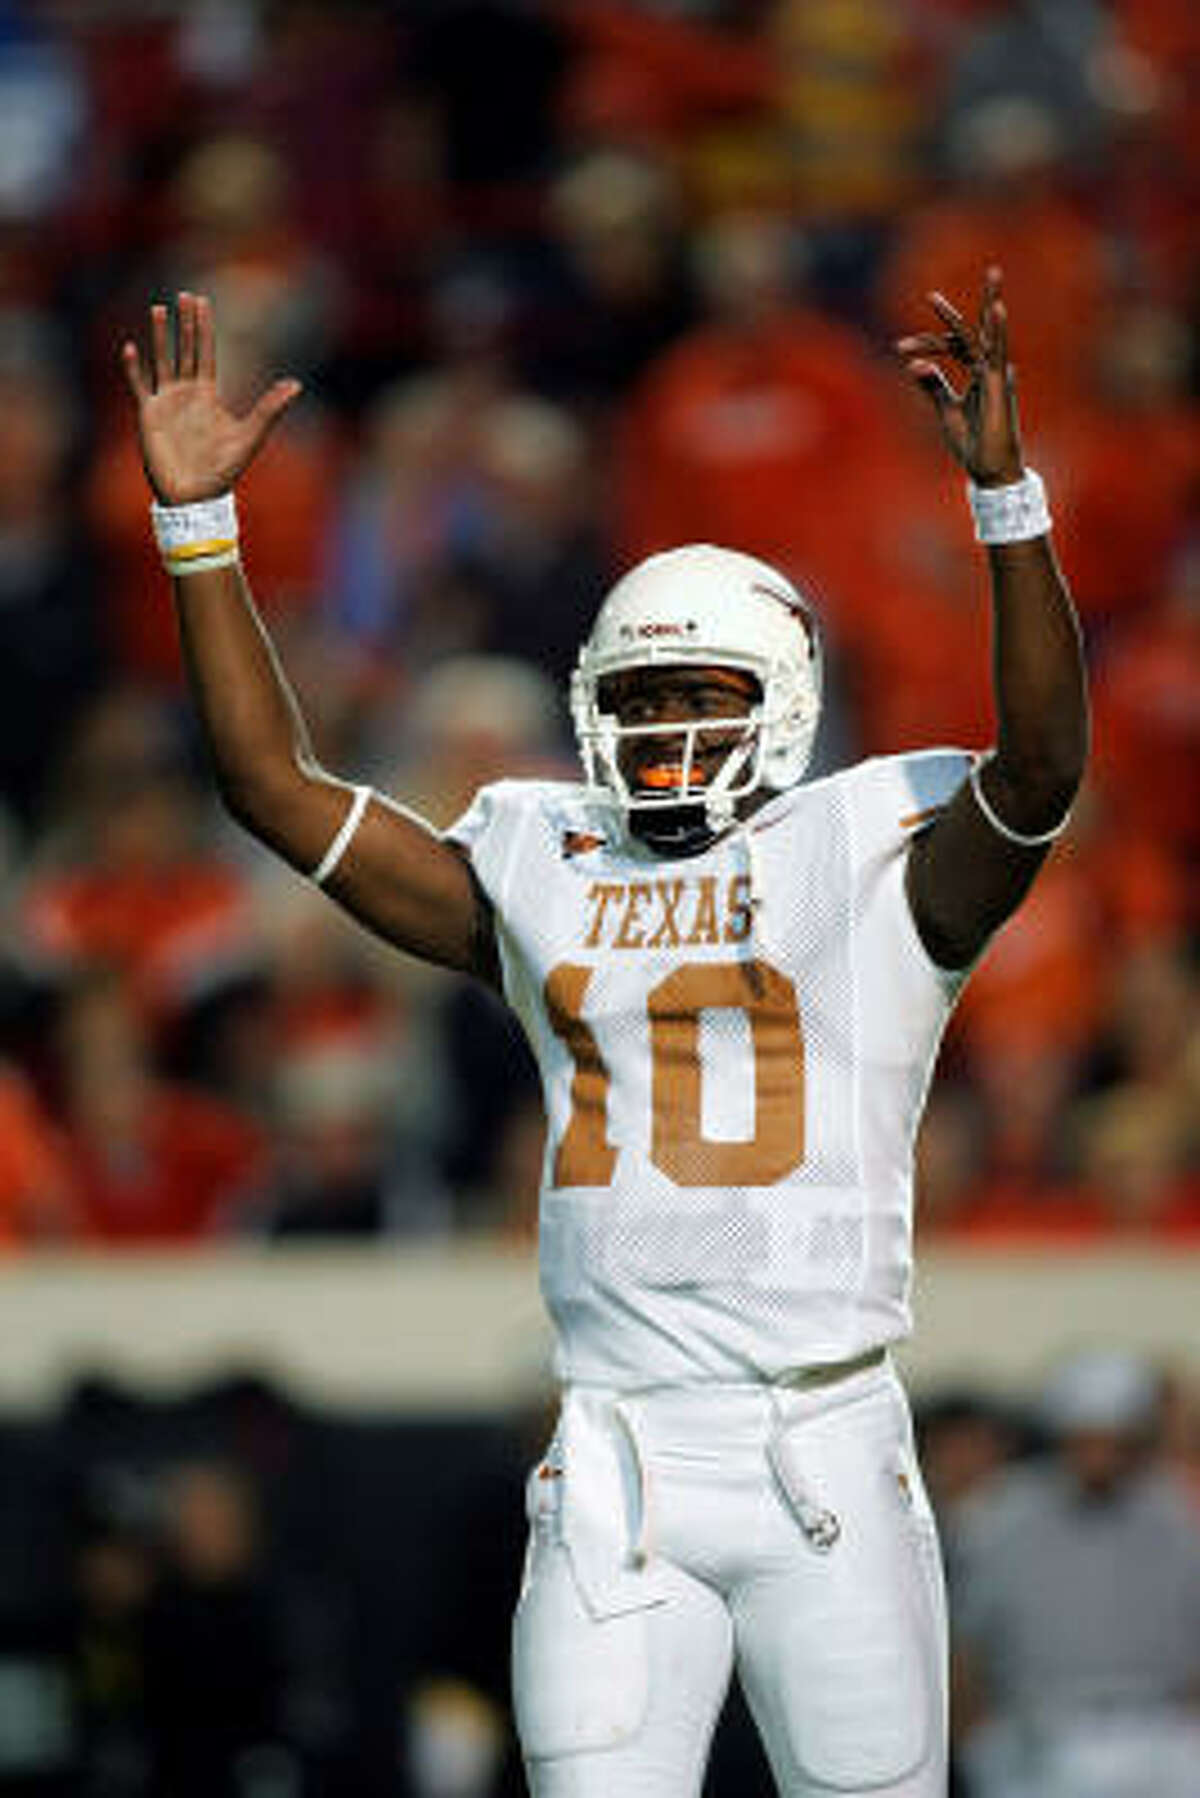 Vince Young, No. 10, football (2003-05): The Madison product led the Longhorns to the 2005 national championship while winning the Maxwell and Davey O'Brien awards. He finished as runner-up for the Heisman Trophy.